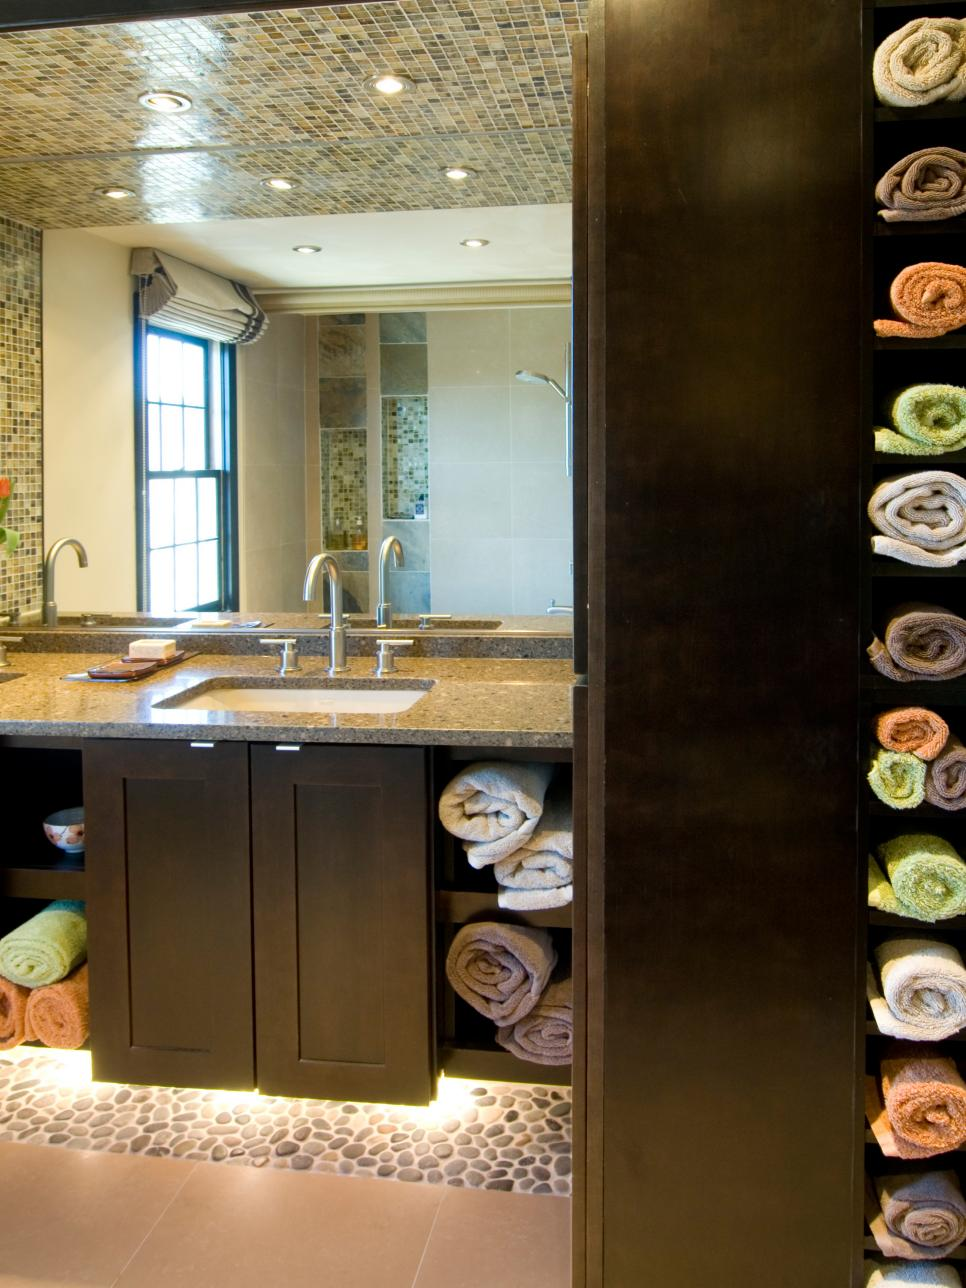 Bathroom Towel Shelves And Cabinets